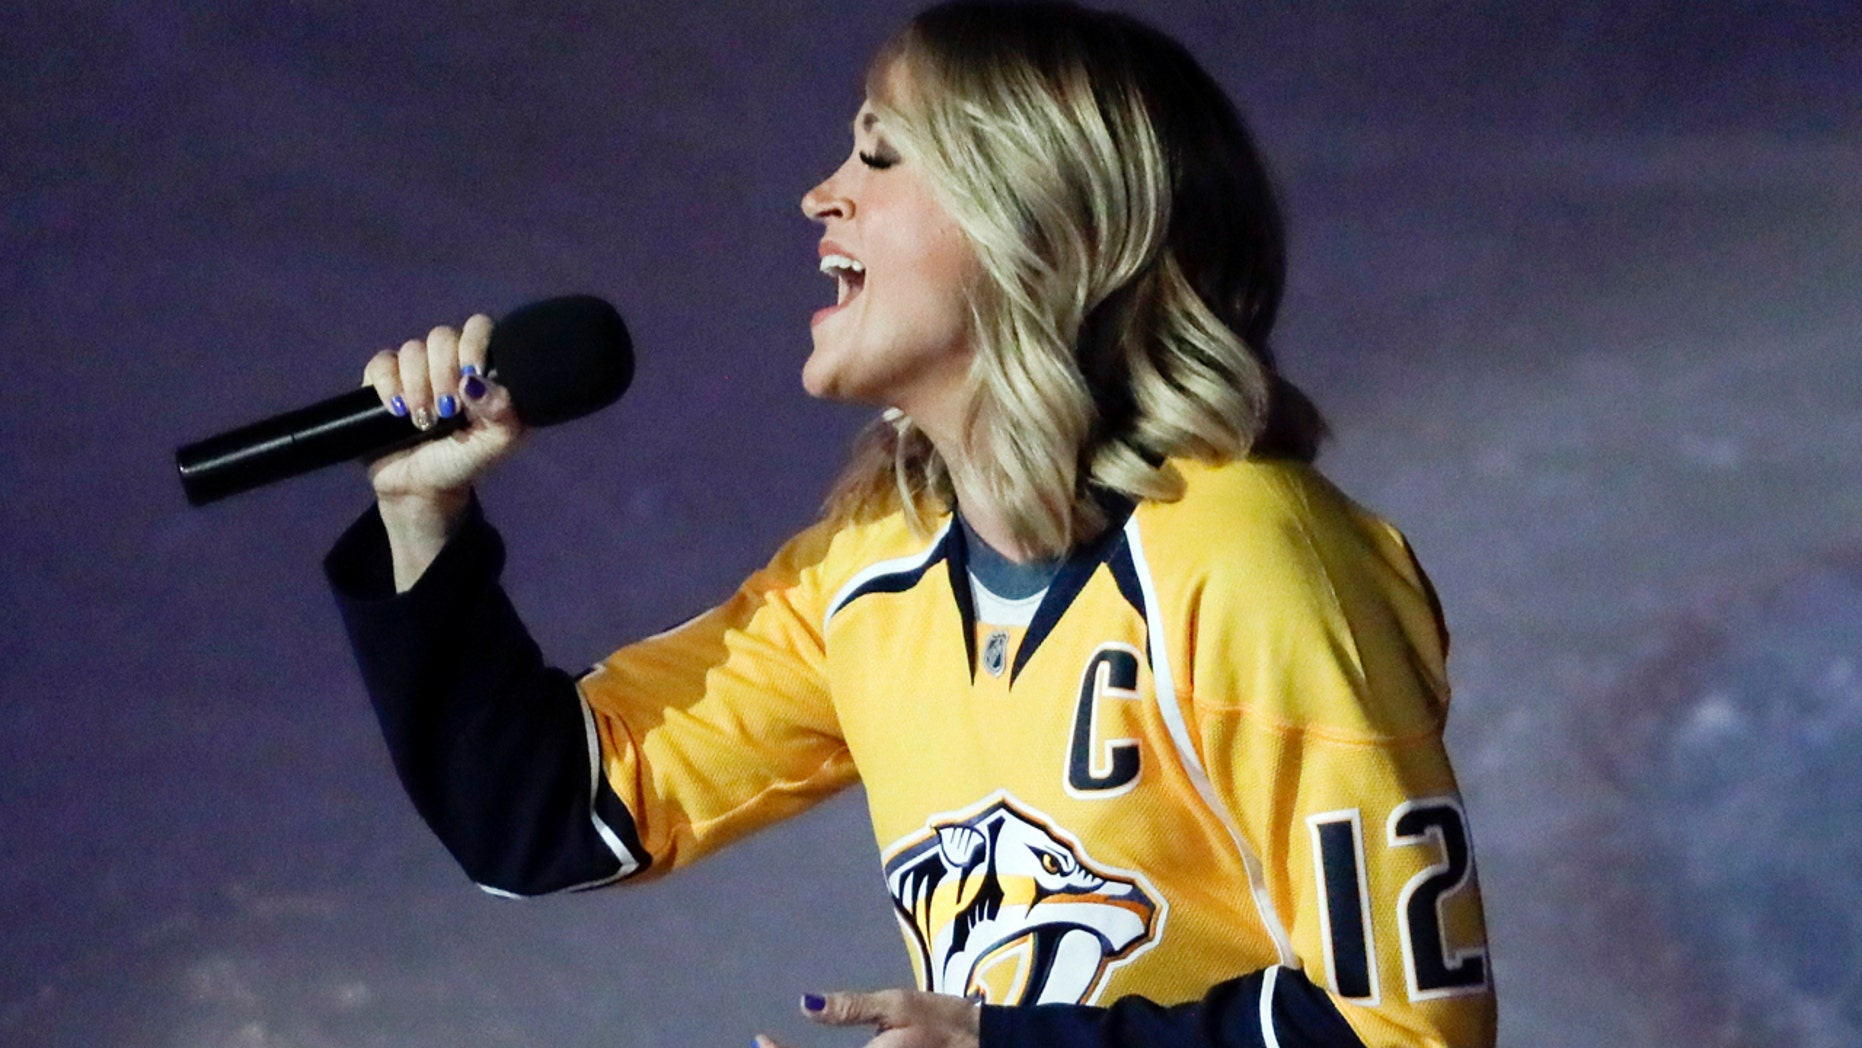 Carrie Underwood performs the national anthem before Game 3 of a first-round NHL hockey playoff series between the Predators and the Chicago Blackhawks Monday, April 17, 2017, in Nashville, Tenn.